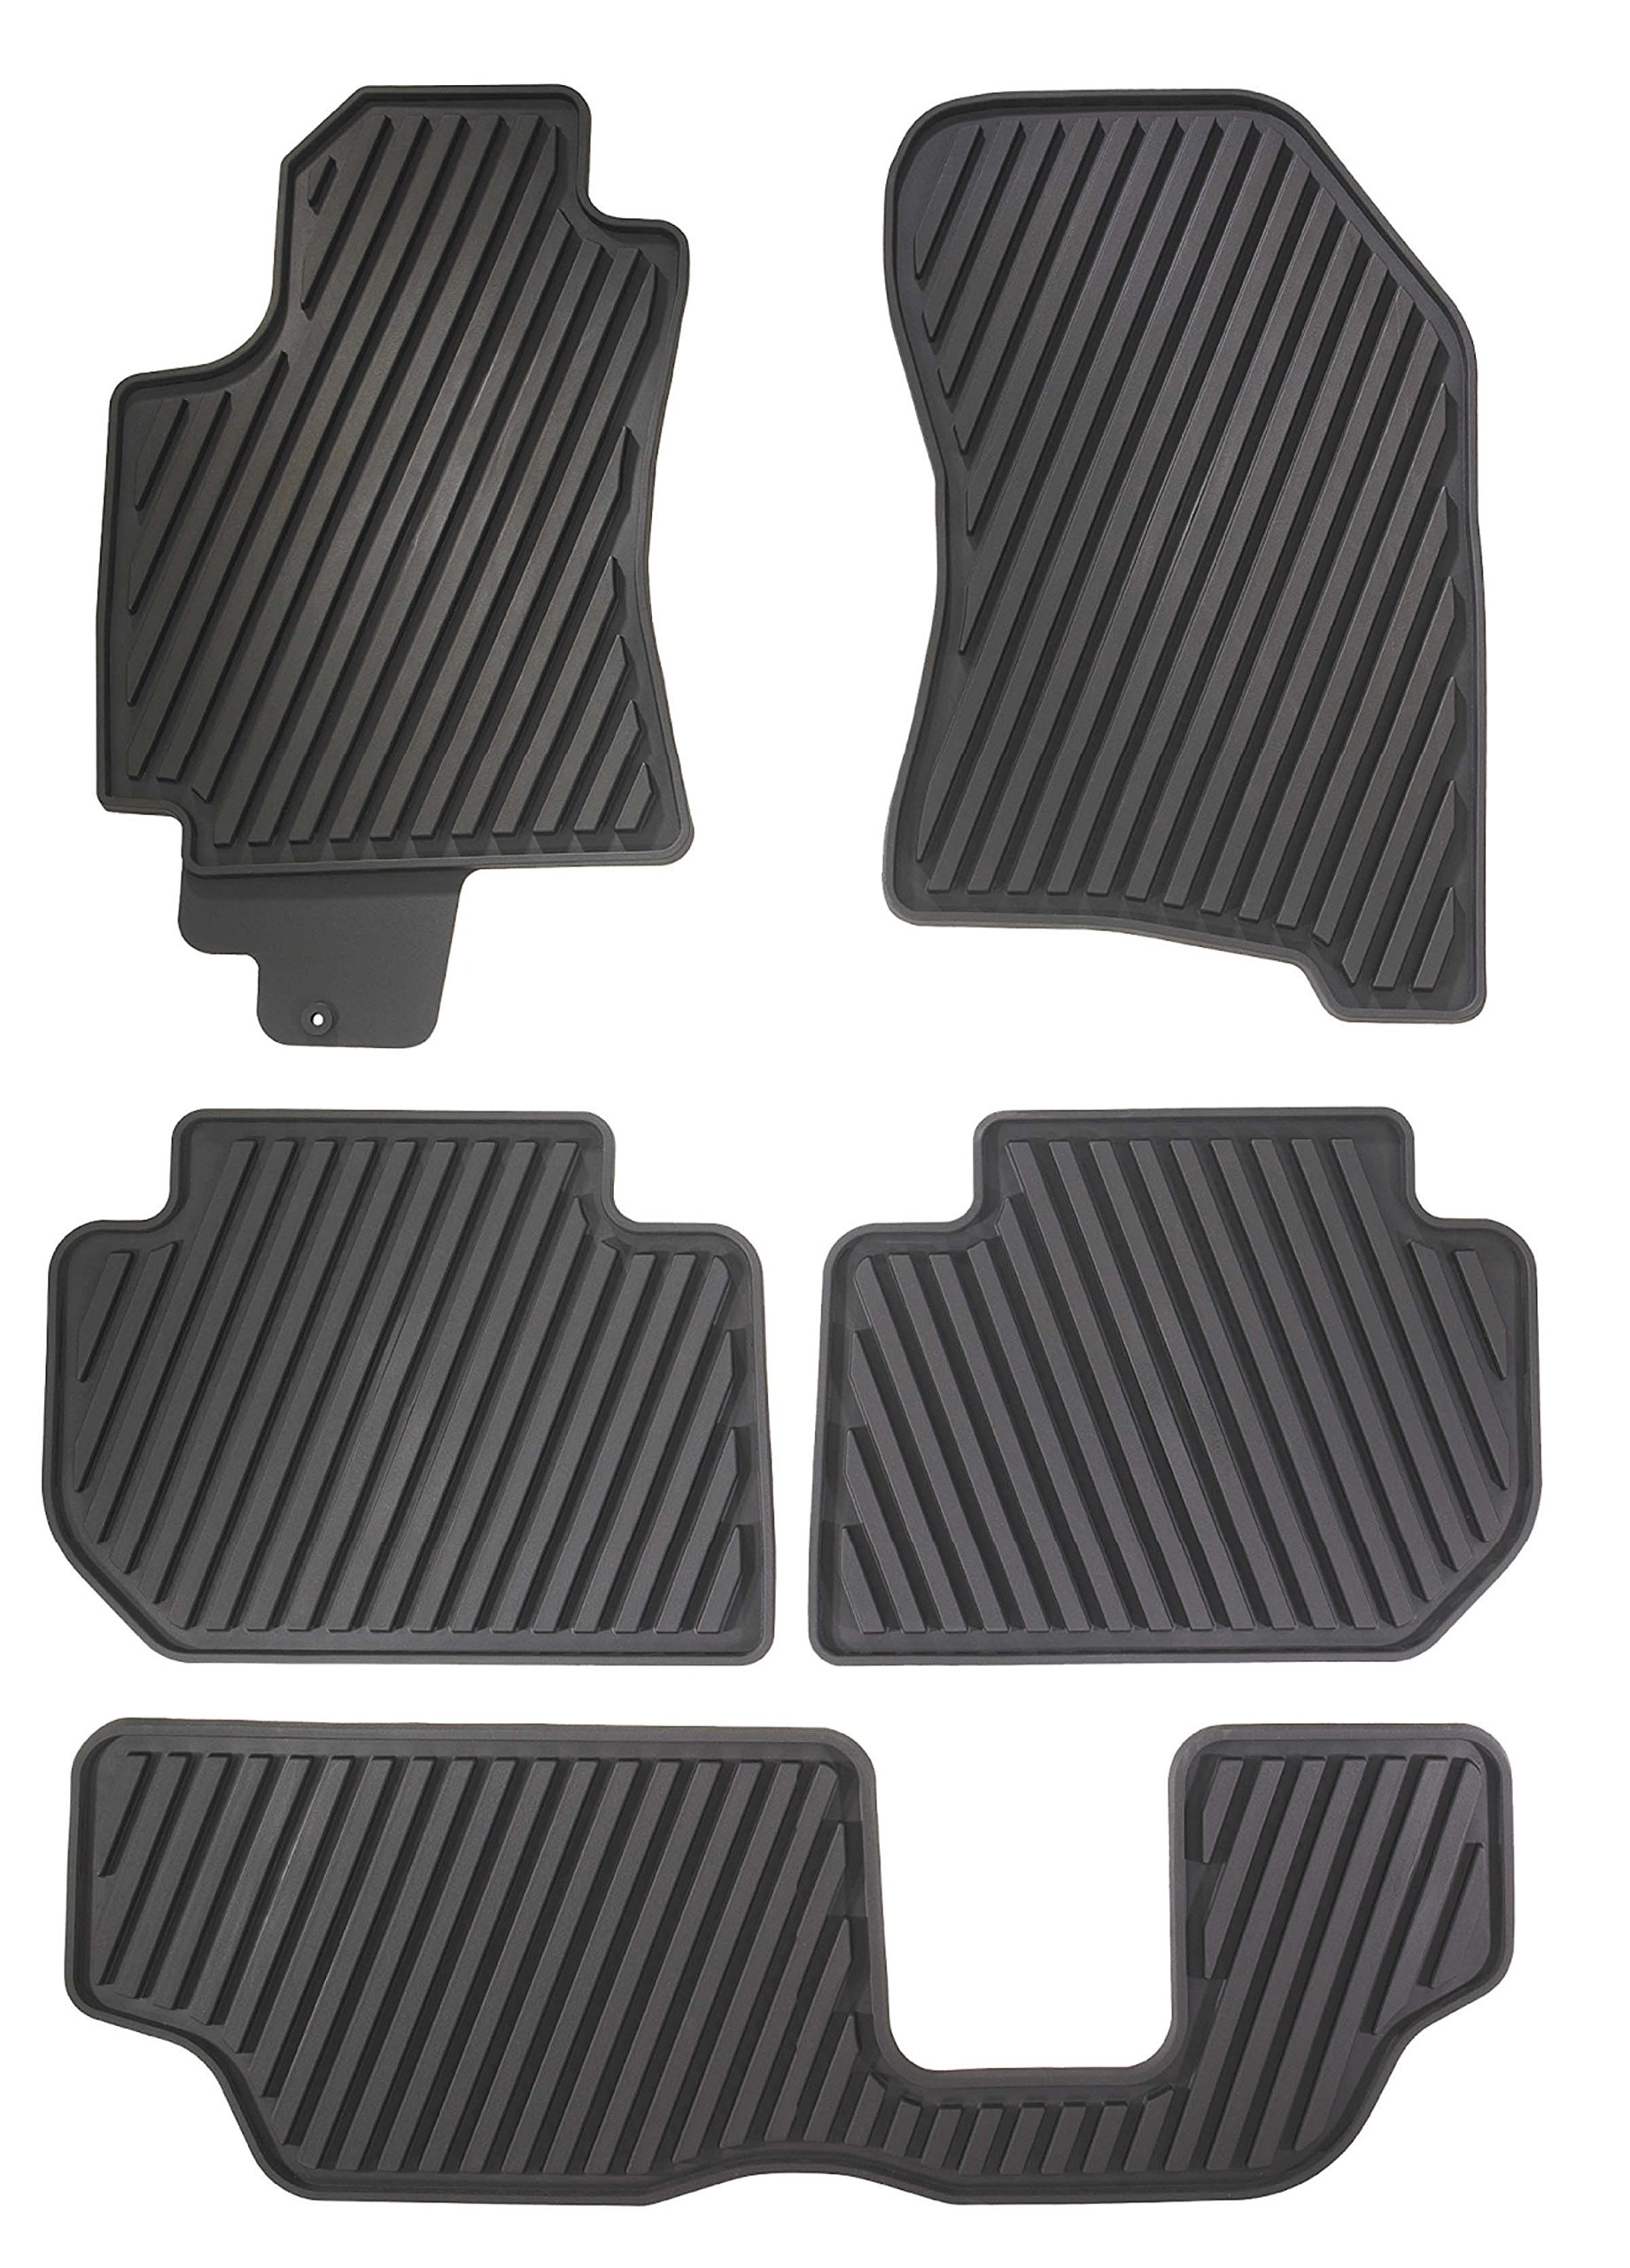 Subaru Genuine J501SXA300 Floor Mat